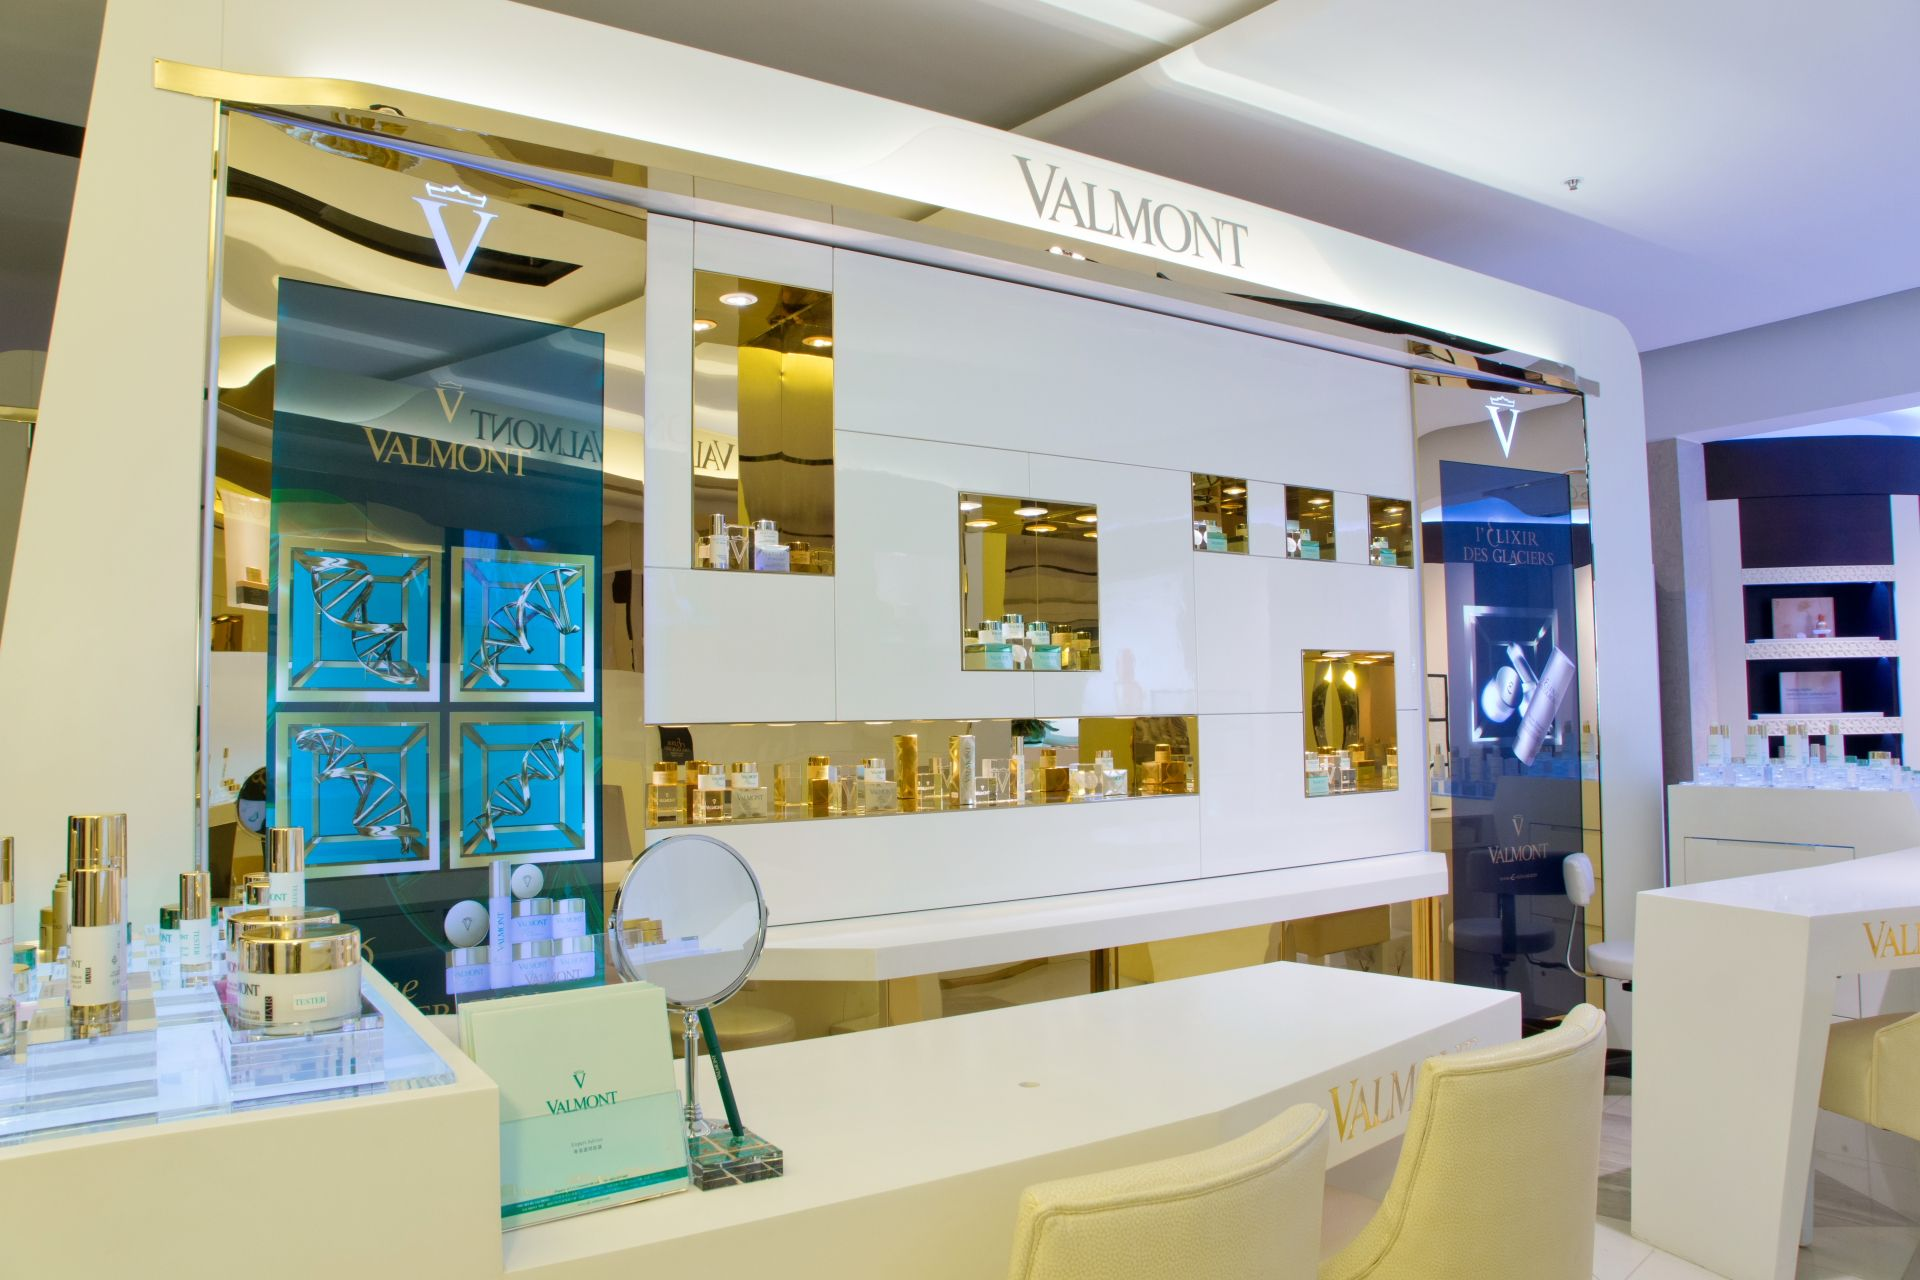 Valmont in Harvey Nichols in Hong Kong